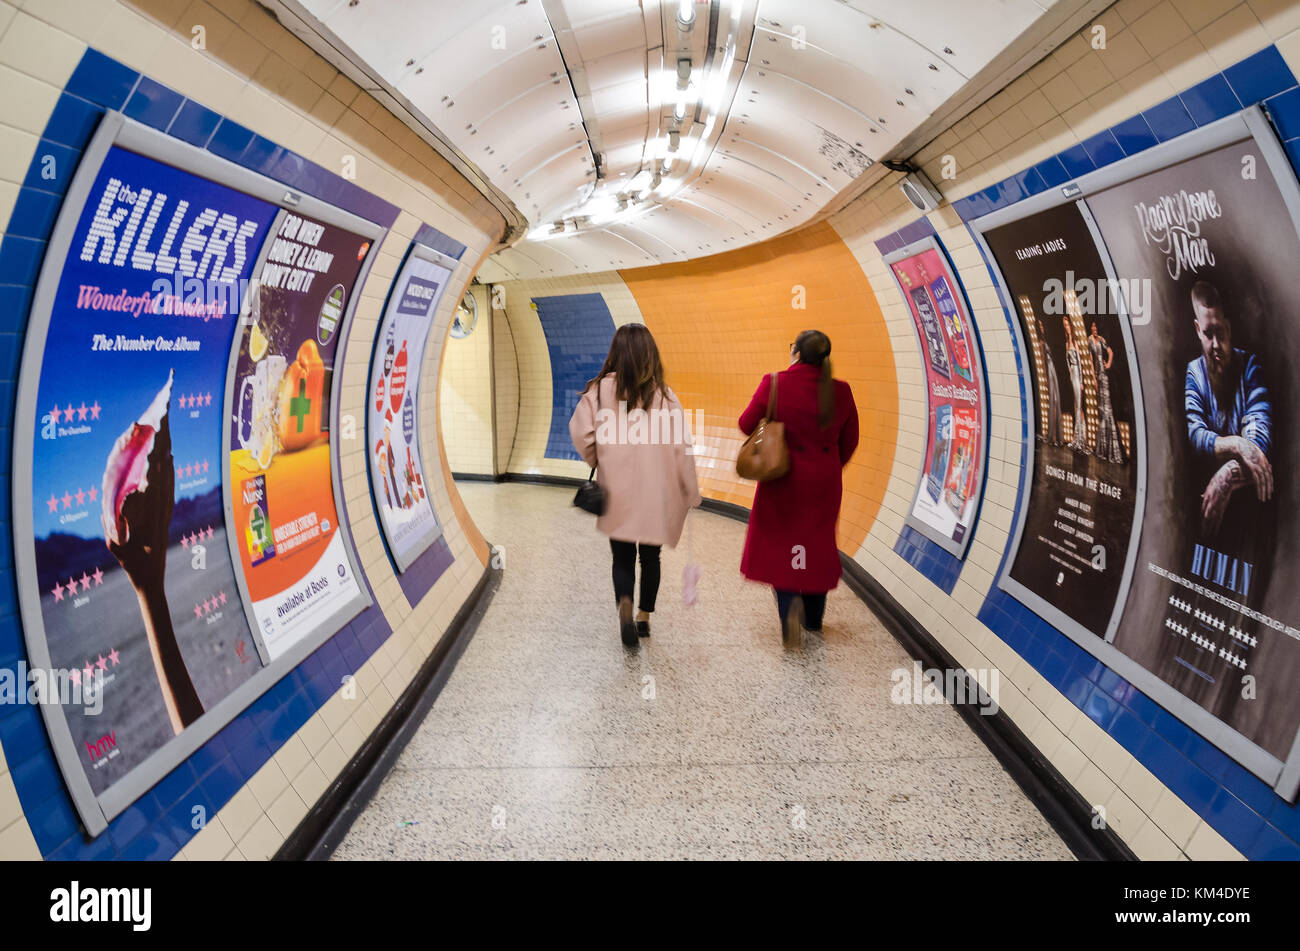 Two ladies walk through a connecting tunnel on the London Underground. The walls are covered with advertising posters. - Stock Image